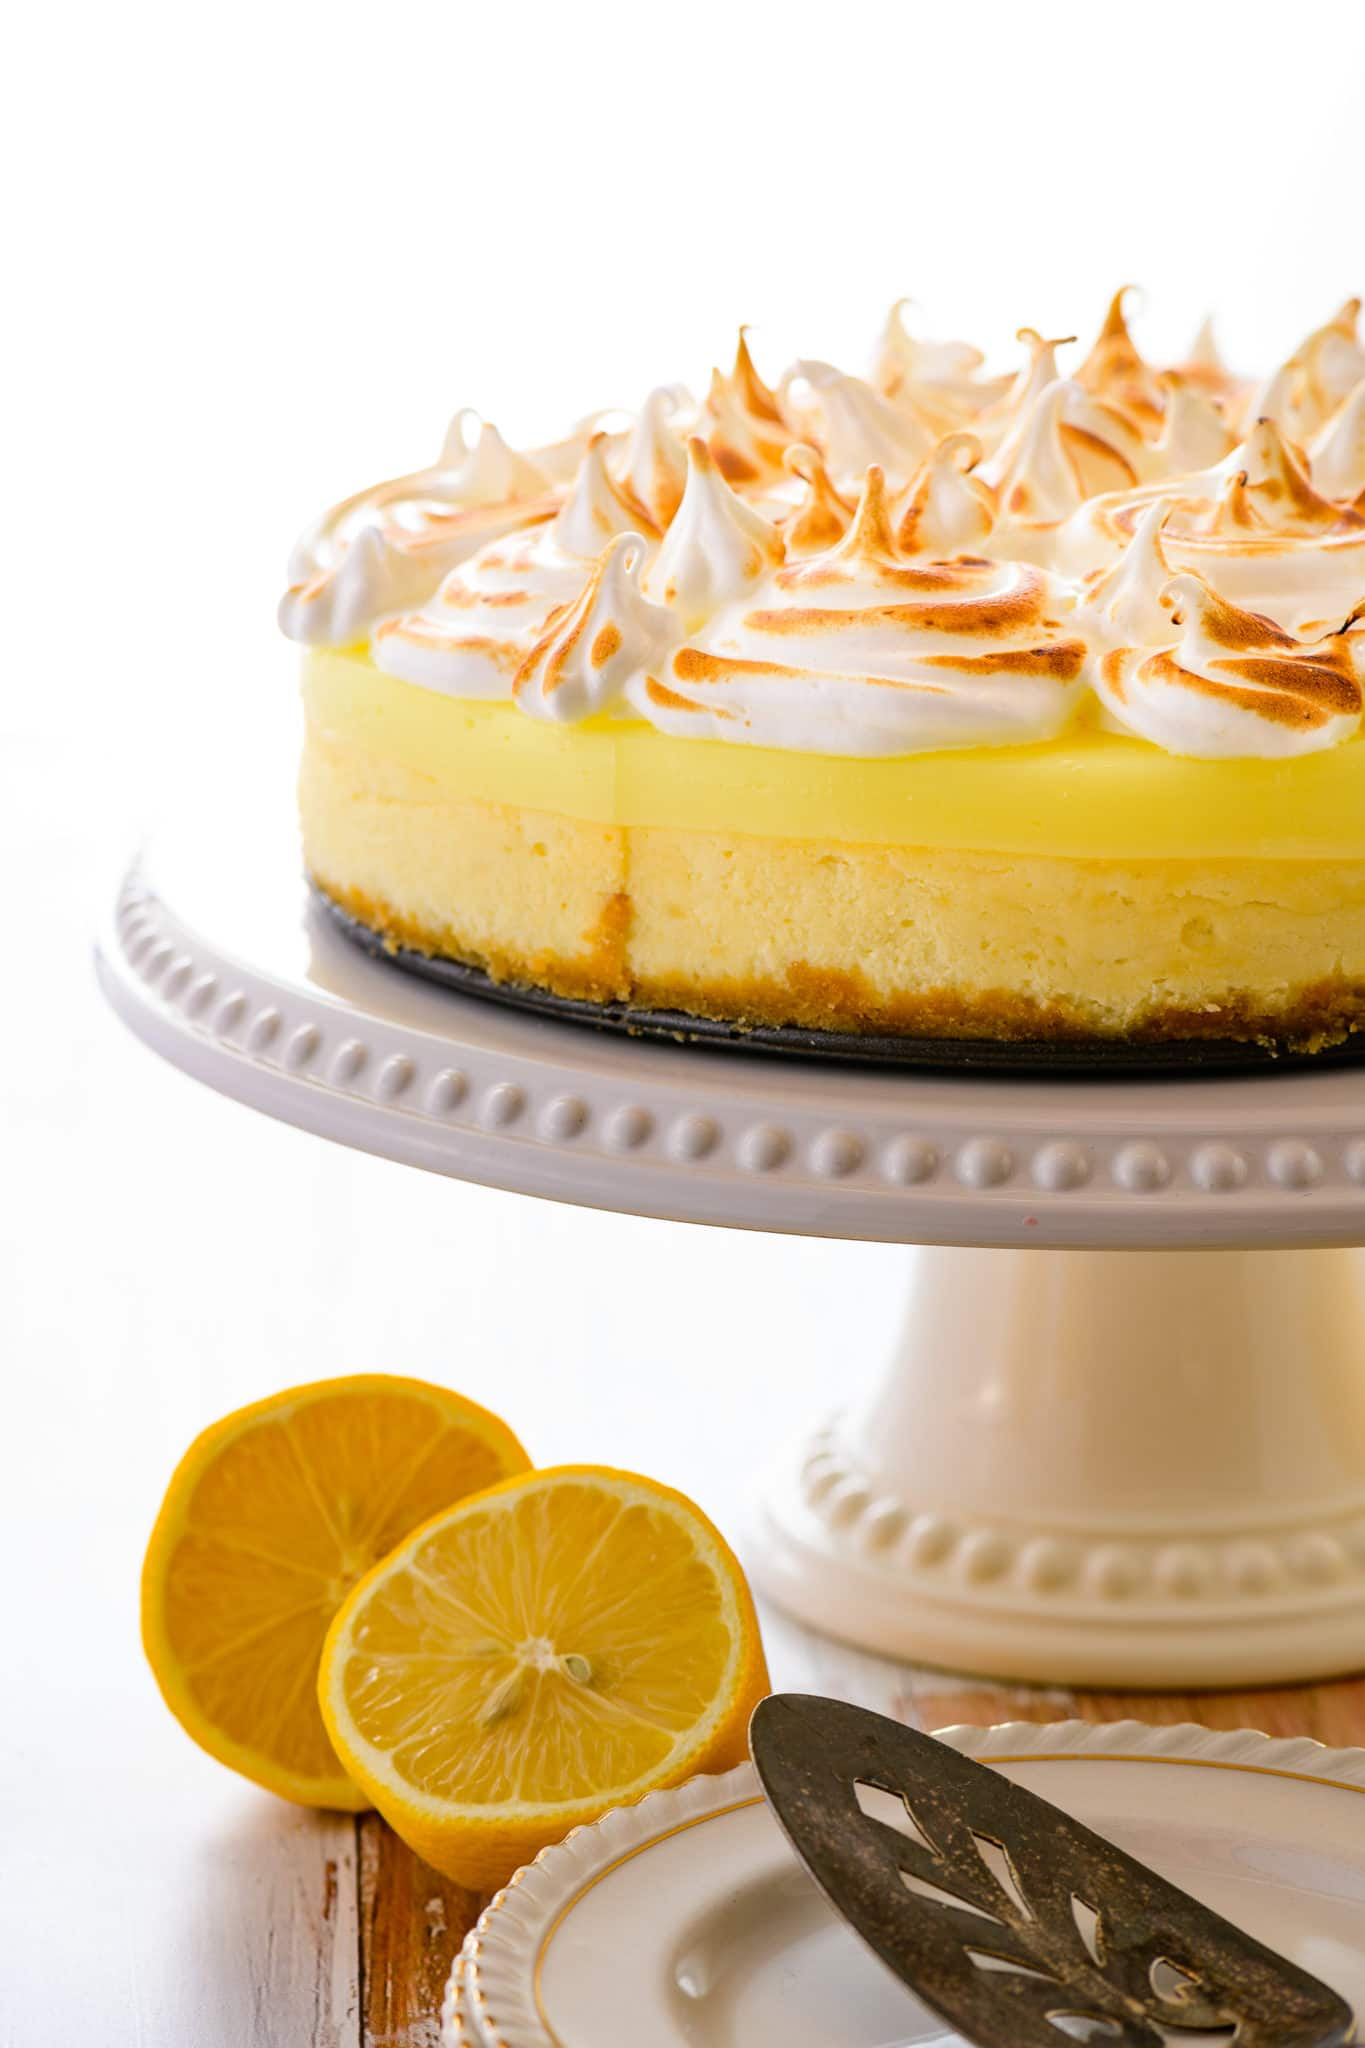 Low carb lemon curd topped cheesecake on a rustic white wooden table top.